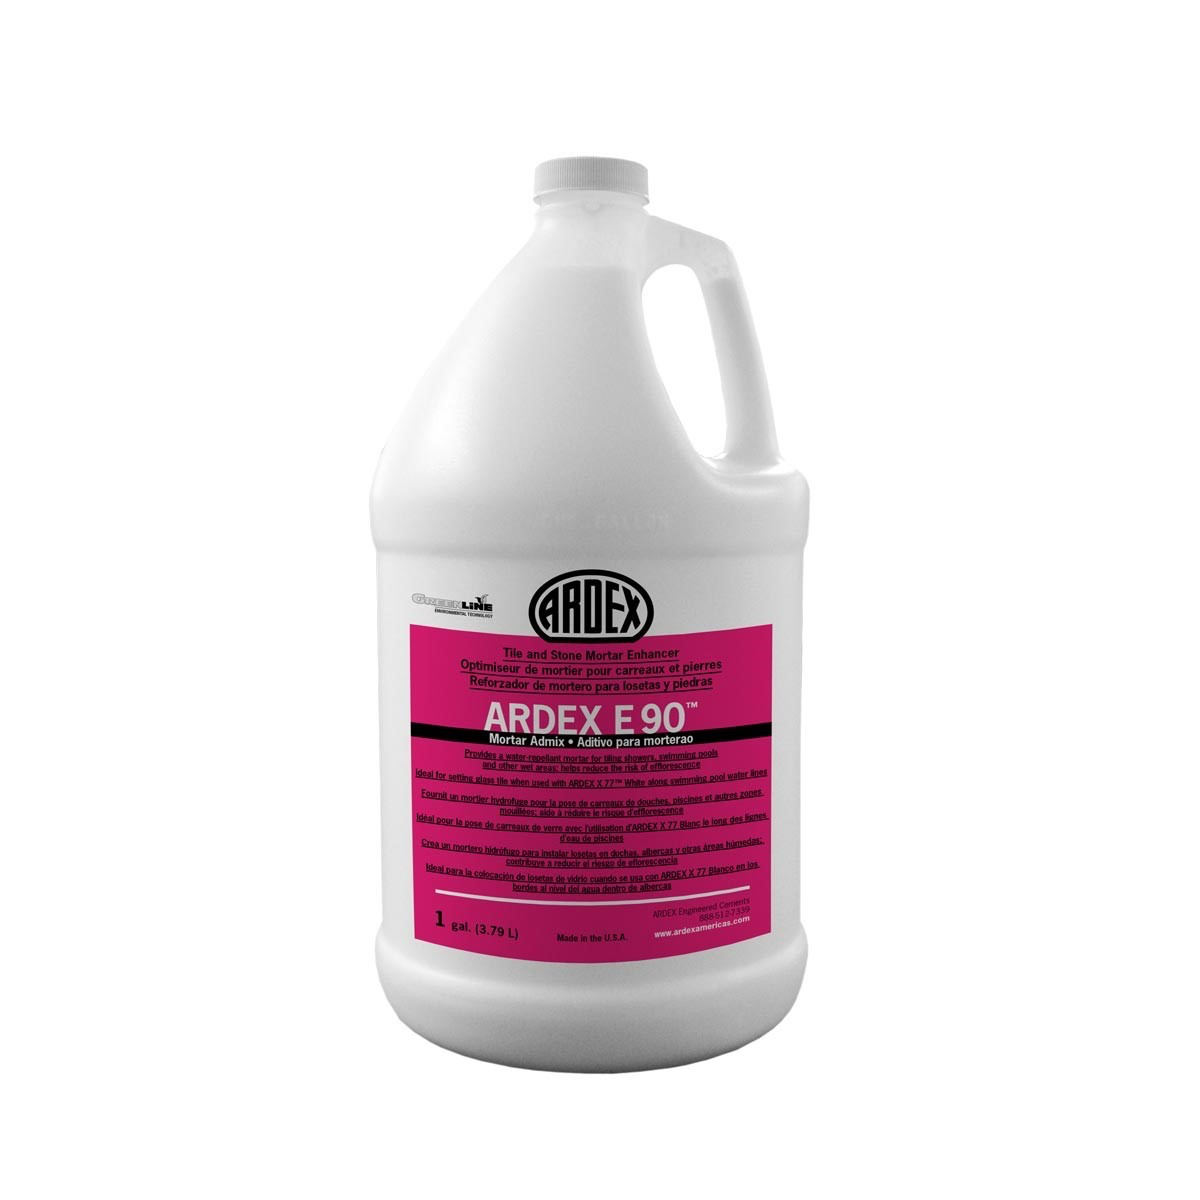 Ardex E 90 Mortar Admix Gallon Floor Heating Systems Heating Systems Mortar